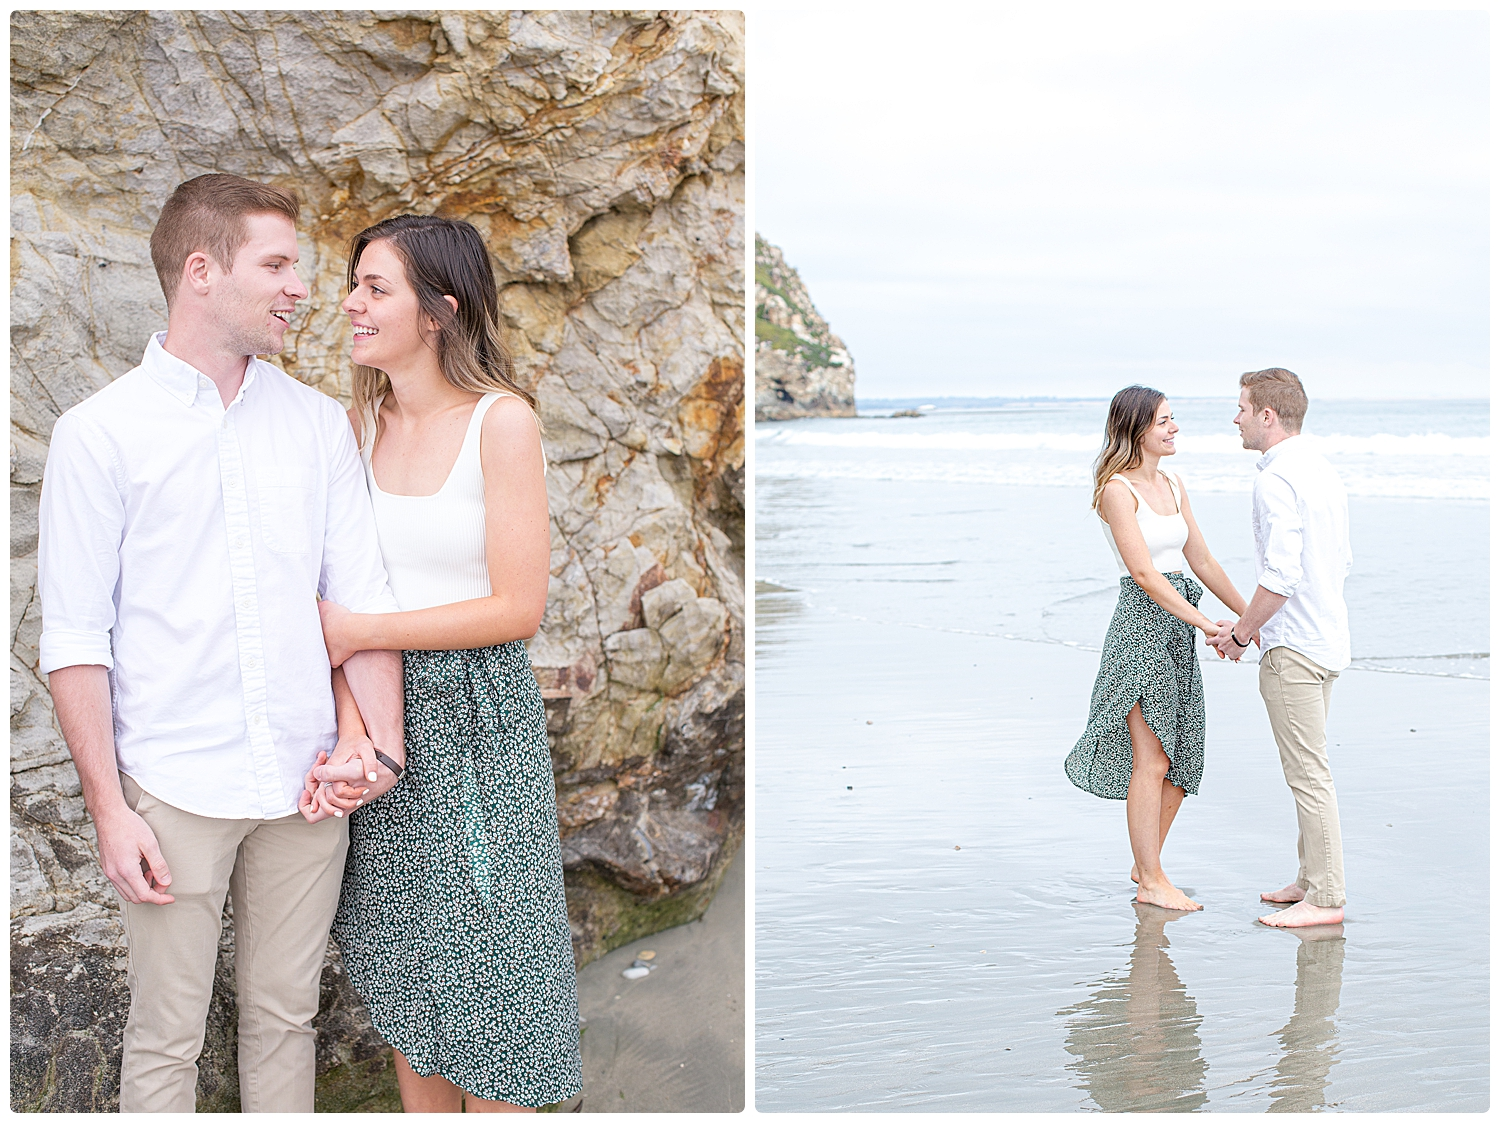 061919_EthanEmma_proposal_Renoda Campbell Photography-7037.jpg